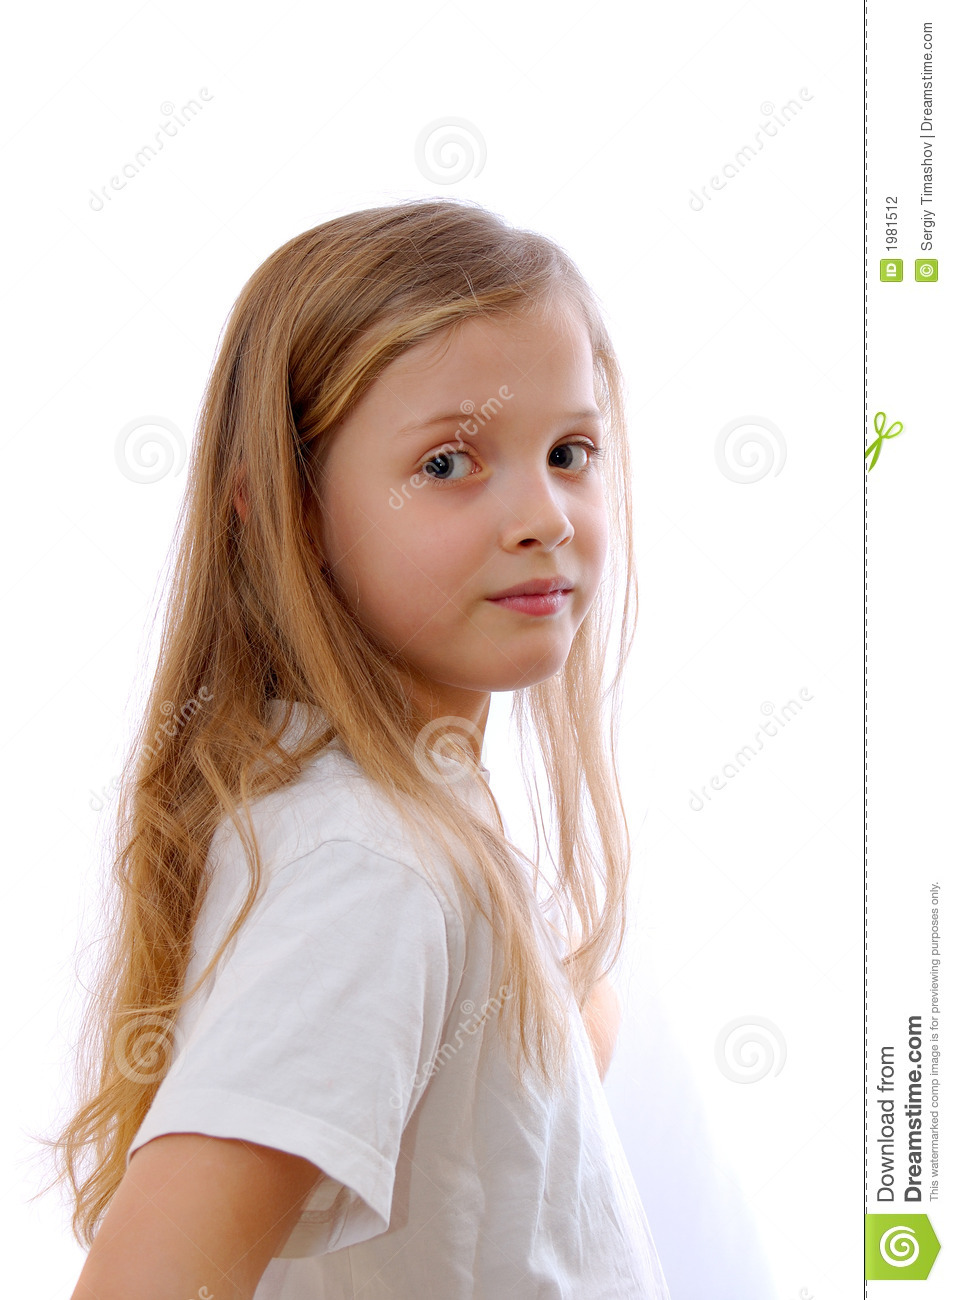 Young Blonde Teen Aged Girl Smiling At The Beach Stock: Young Blonde Girl Stock Photo. Image Of Face, Smiling